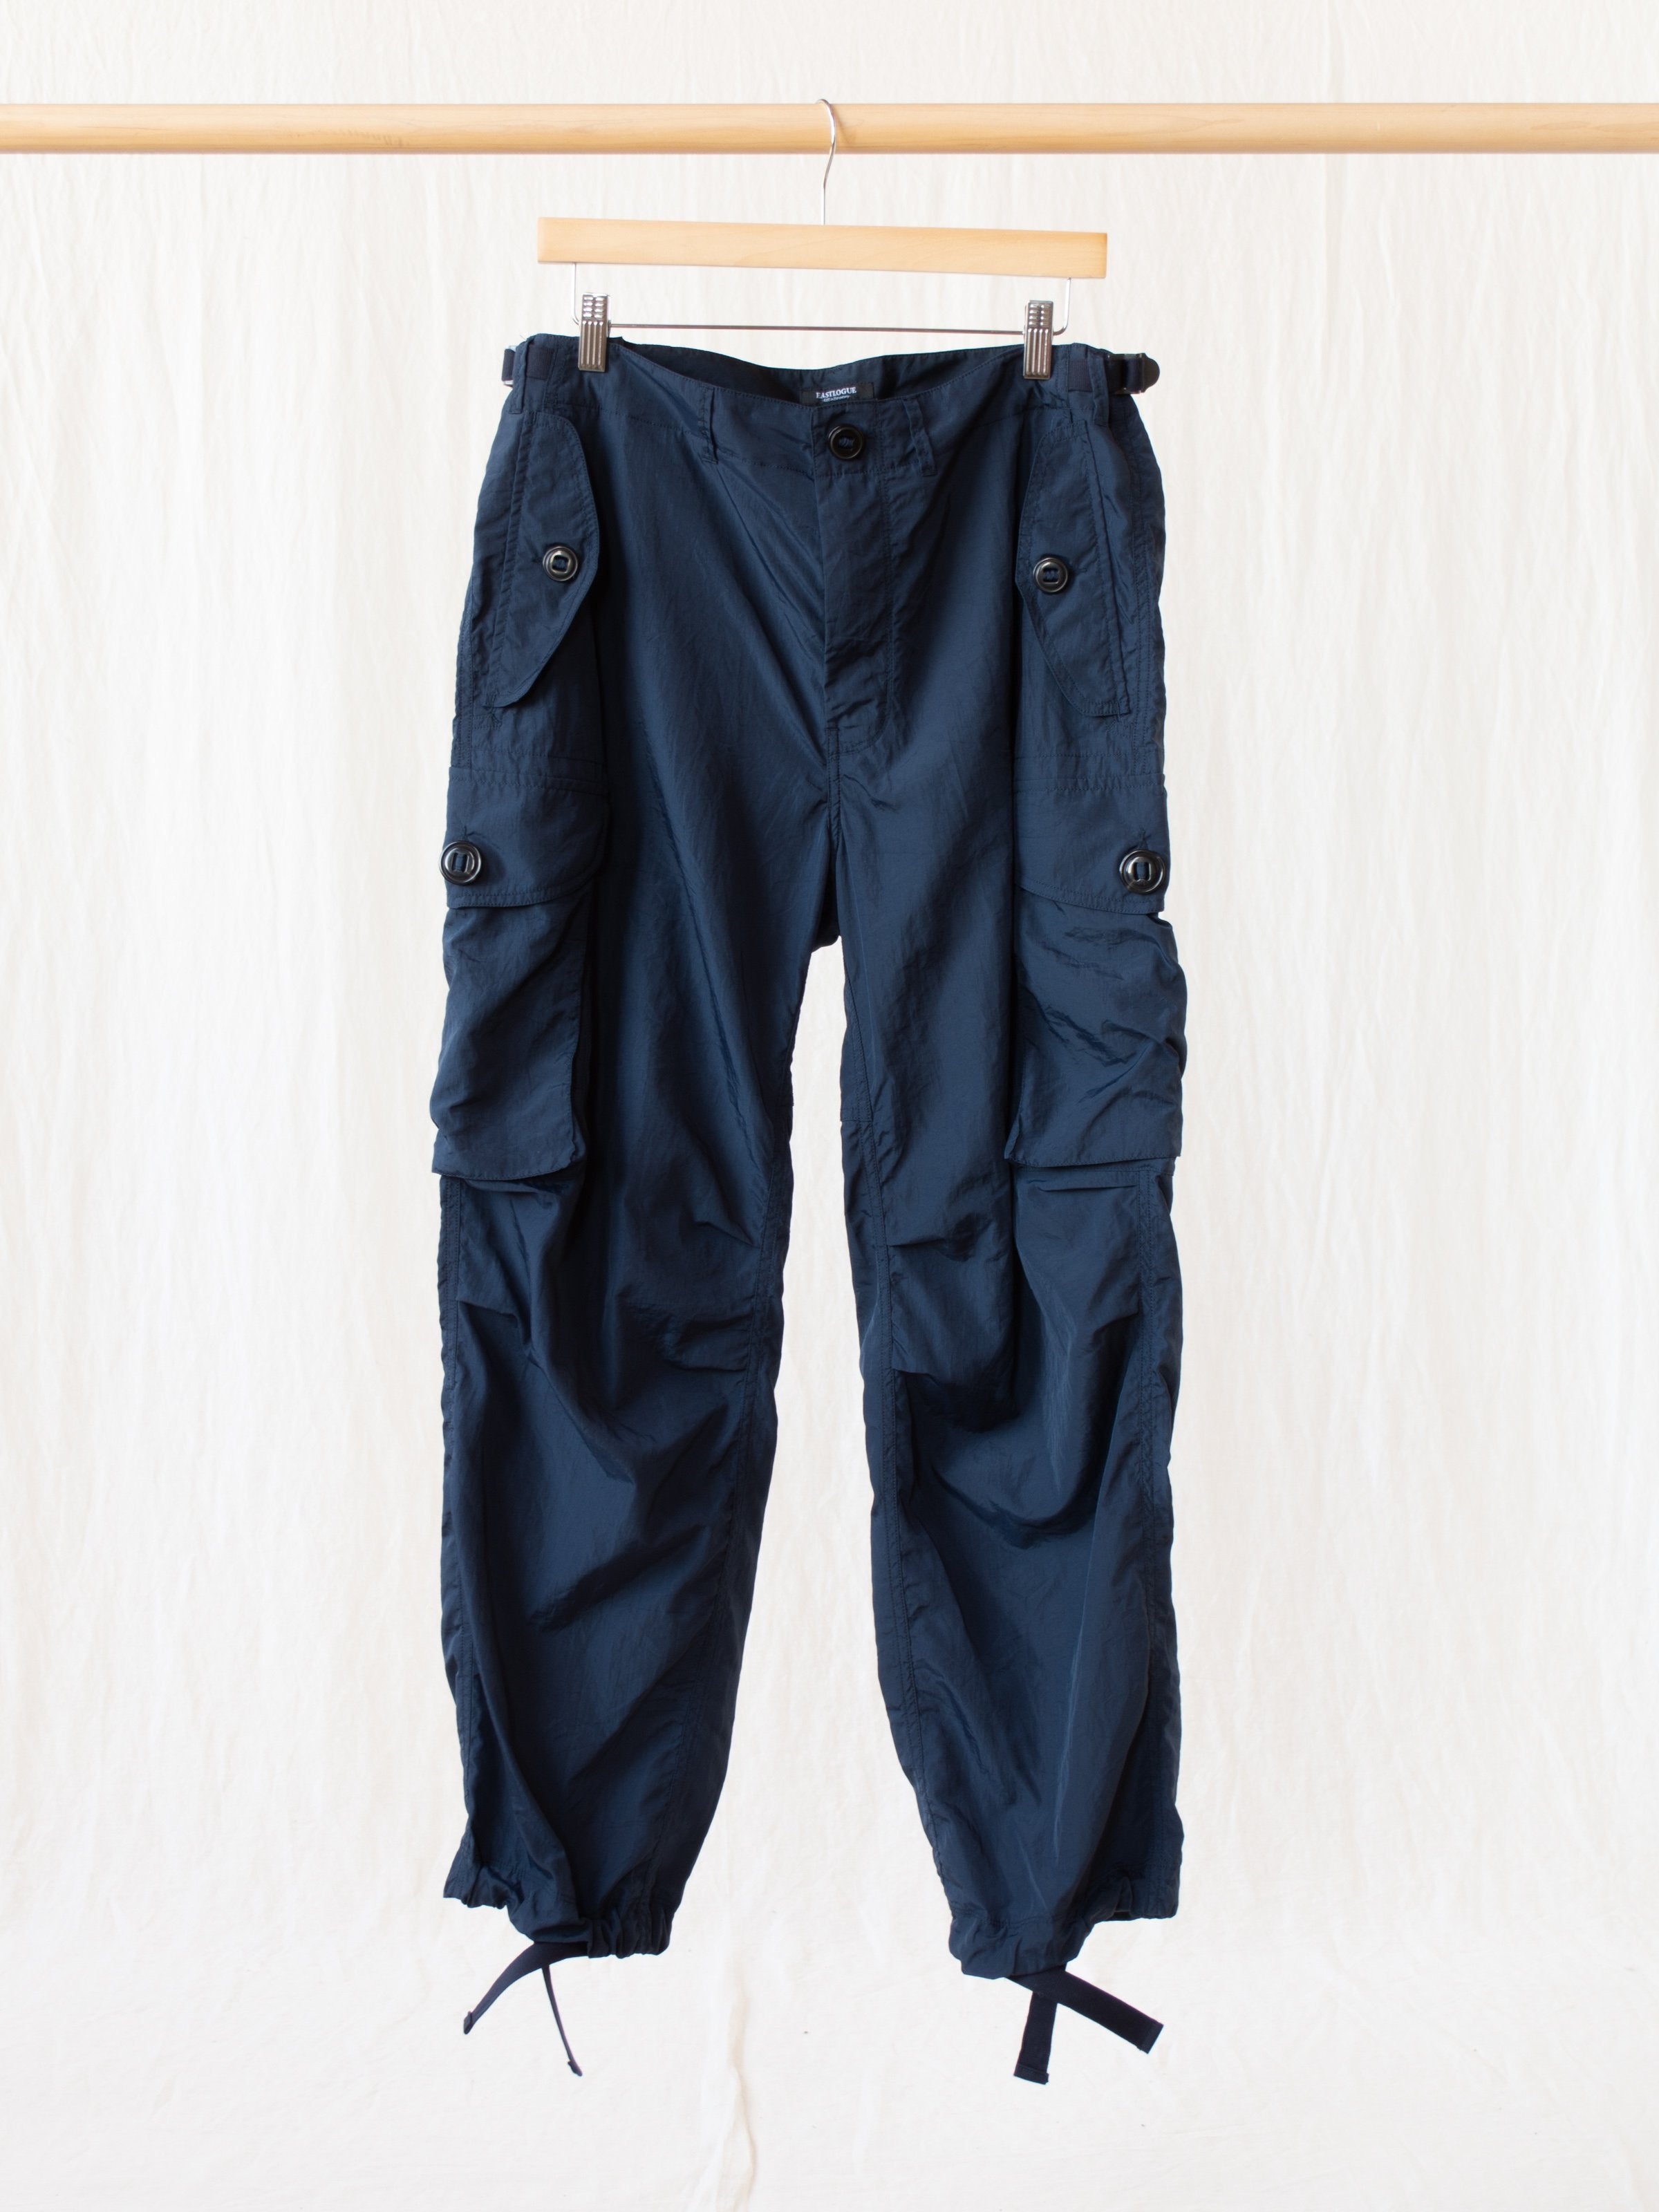 Namu Shop - Eastlogue Combat Pants - Navy Nylon Washer